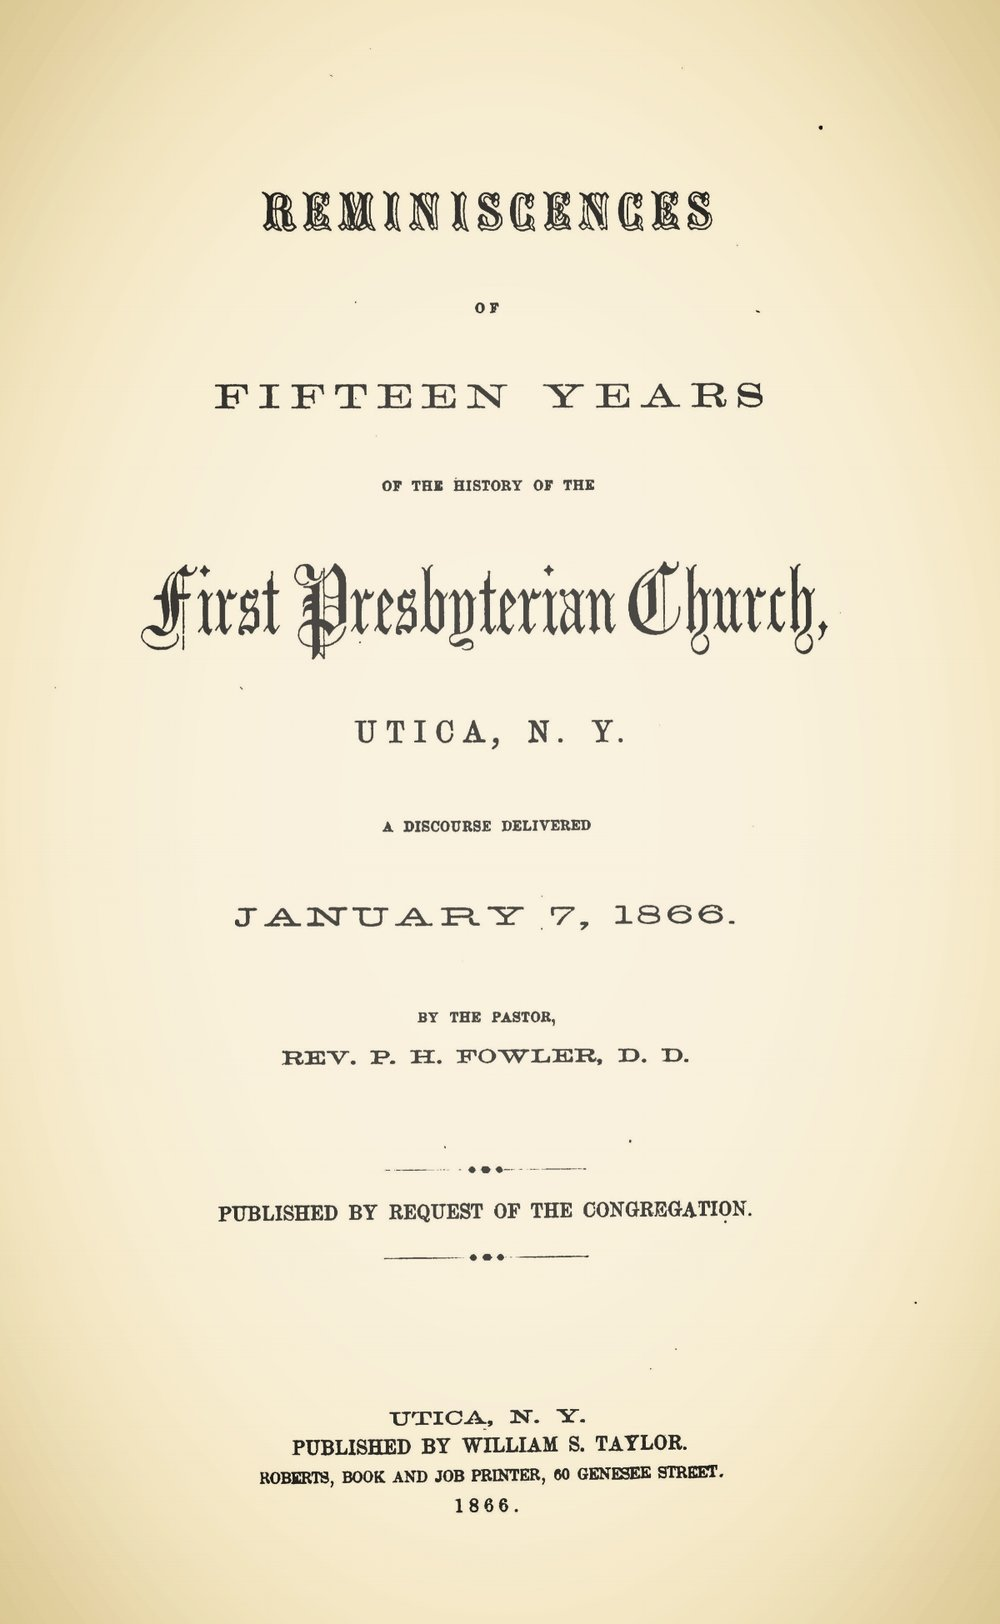 Fowler, Philemon Halsted, Reminiscences of Fifteen Years of the History of the First Presbyterian Church, Utica, N.Y. Title Page.jpg